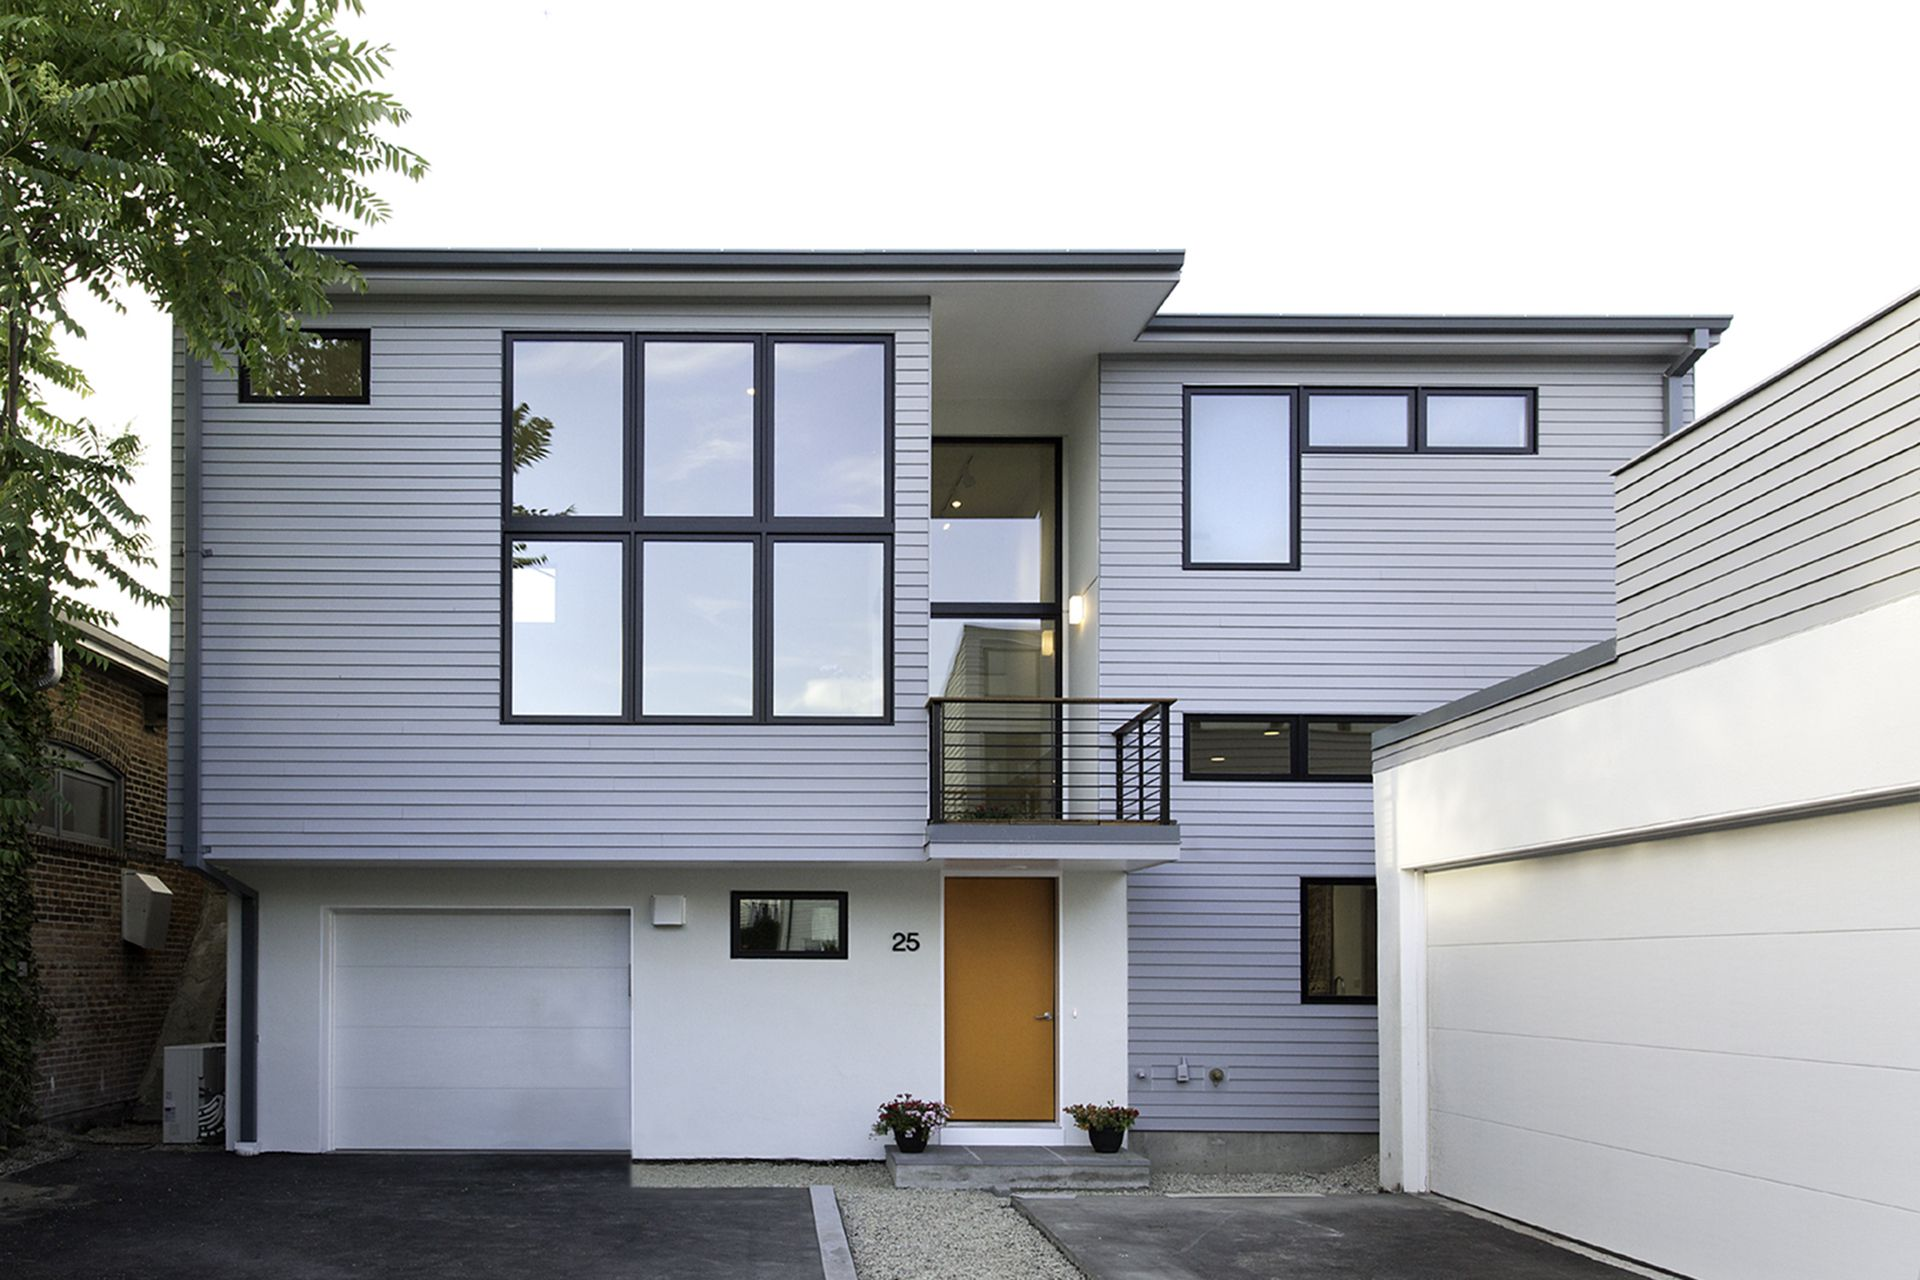 Green building in Somerville MA by Santos Prescott and build by Bensonwood